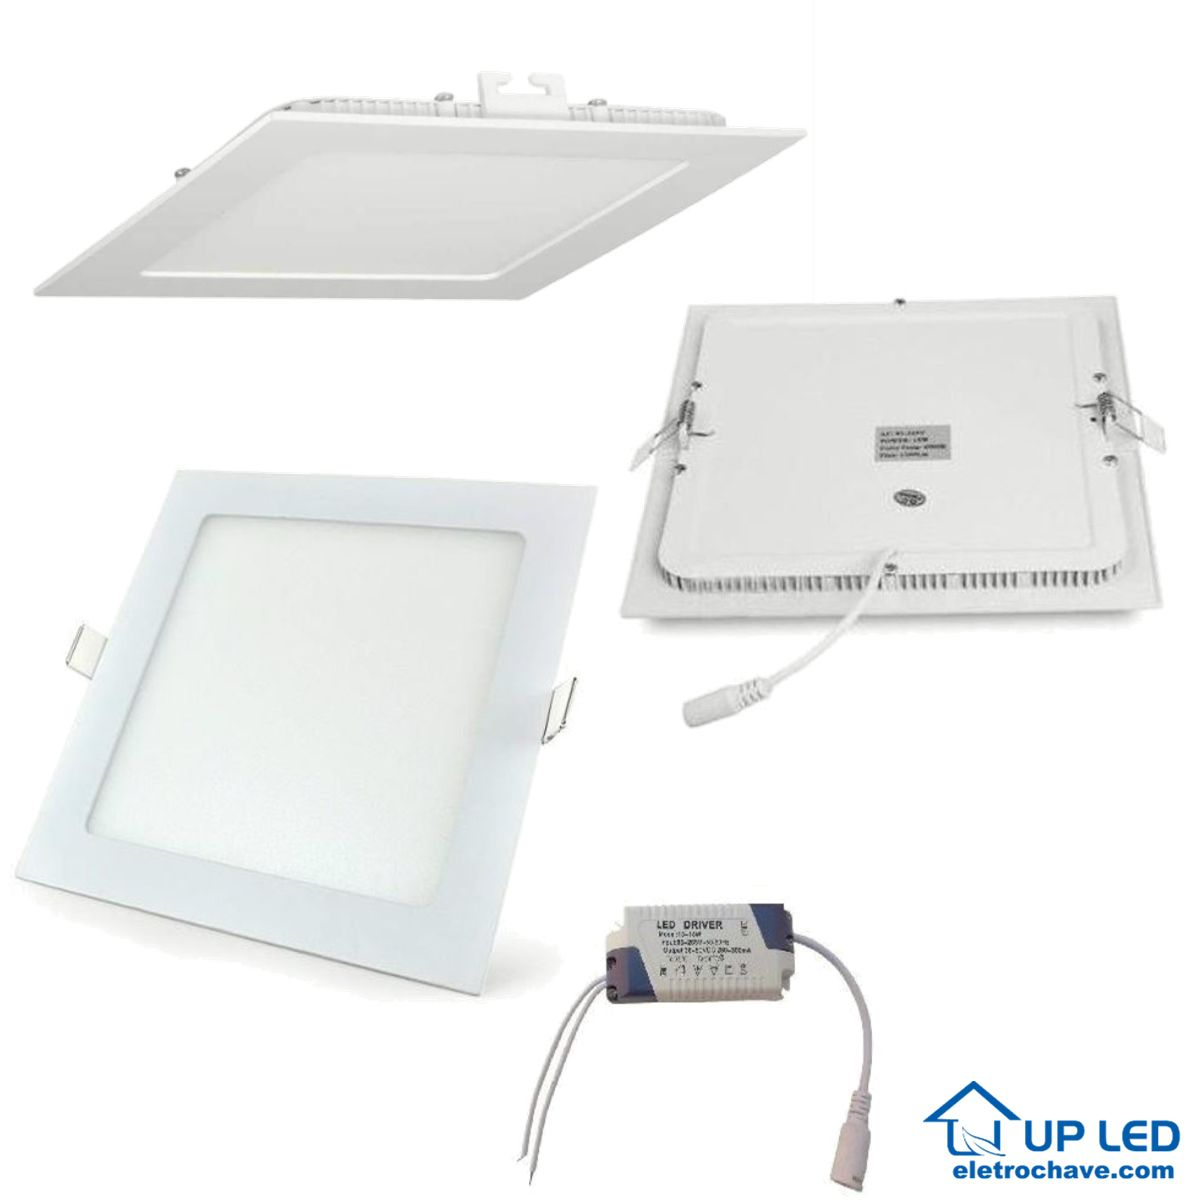 KIT 5 LUM EMB LED QUADRADA 15W 6000K BIVOLT UPLED